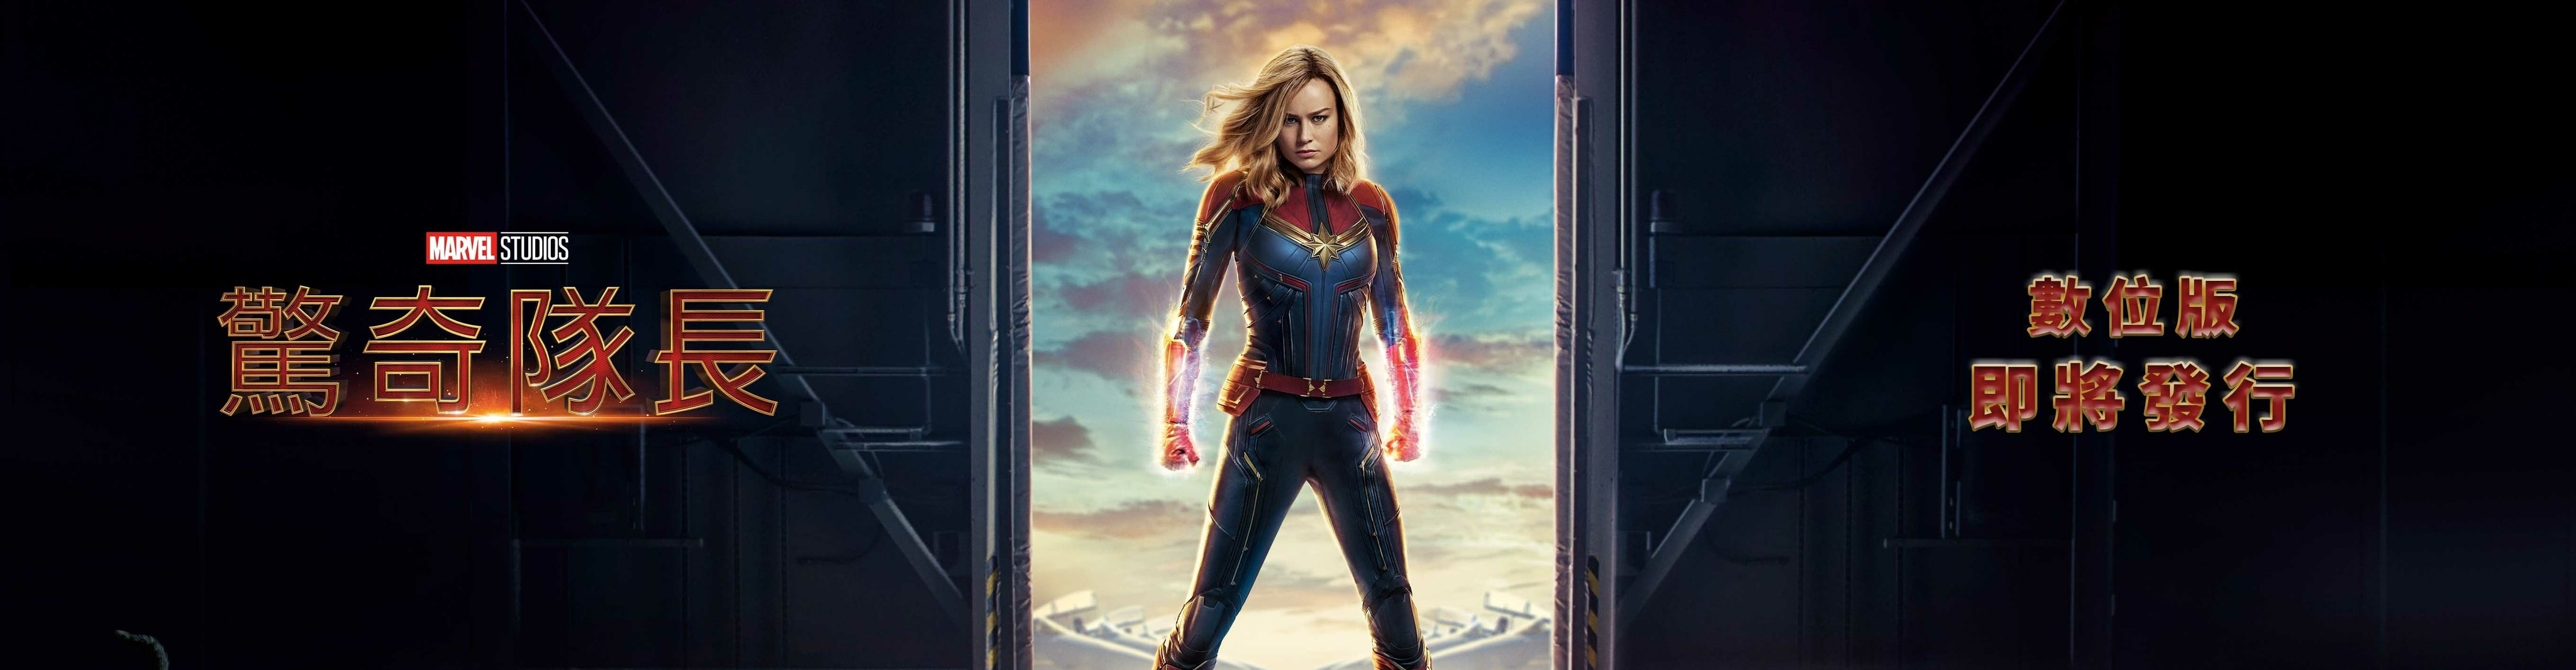 Captain Marvel | Available on DVD, Blu-Ray & Digital Download